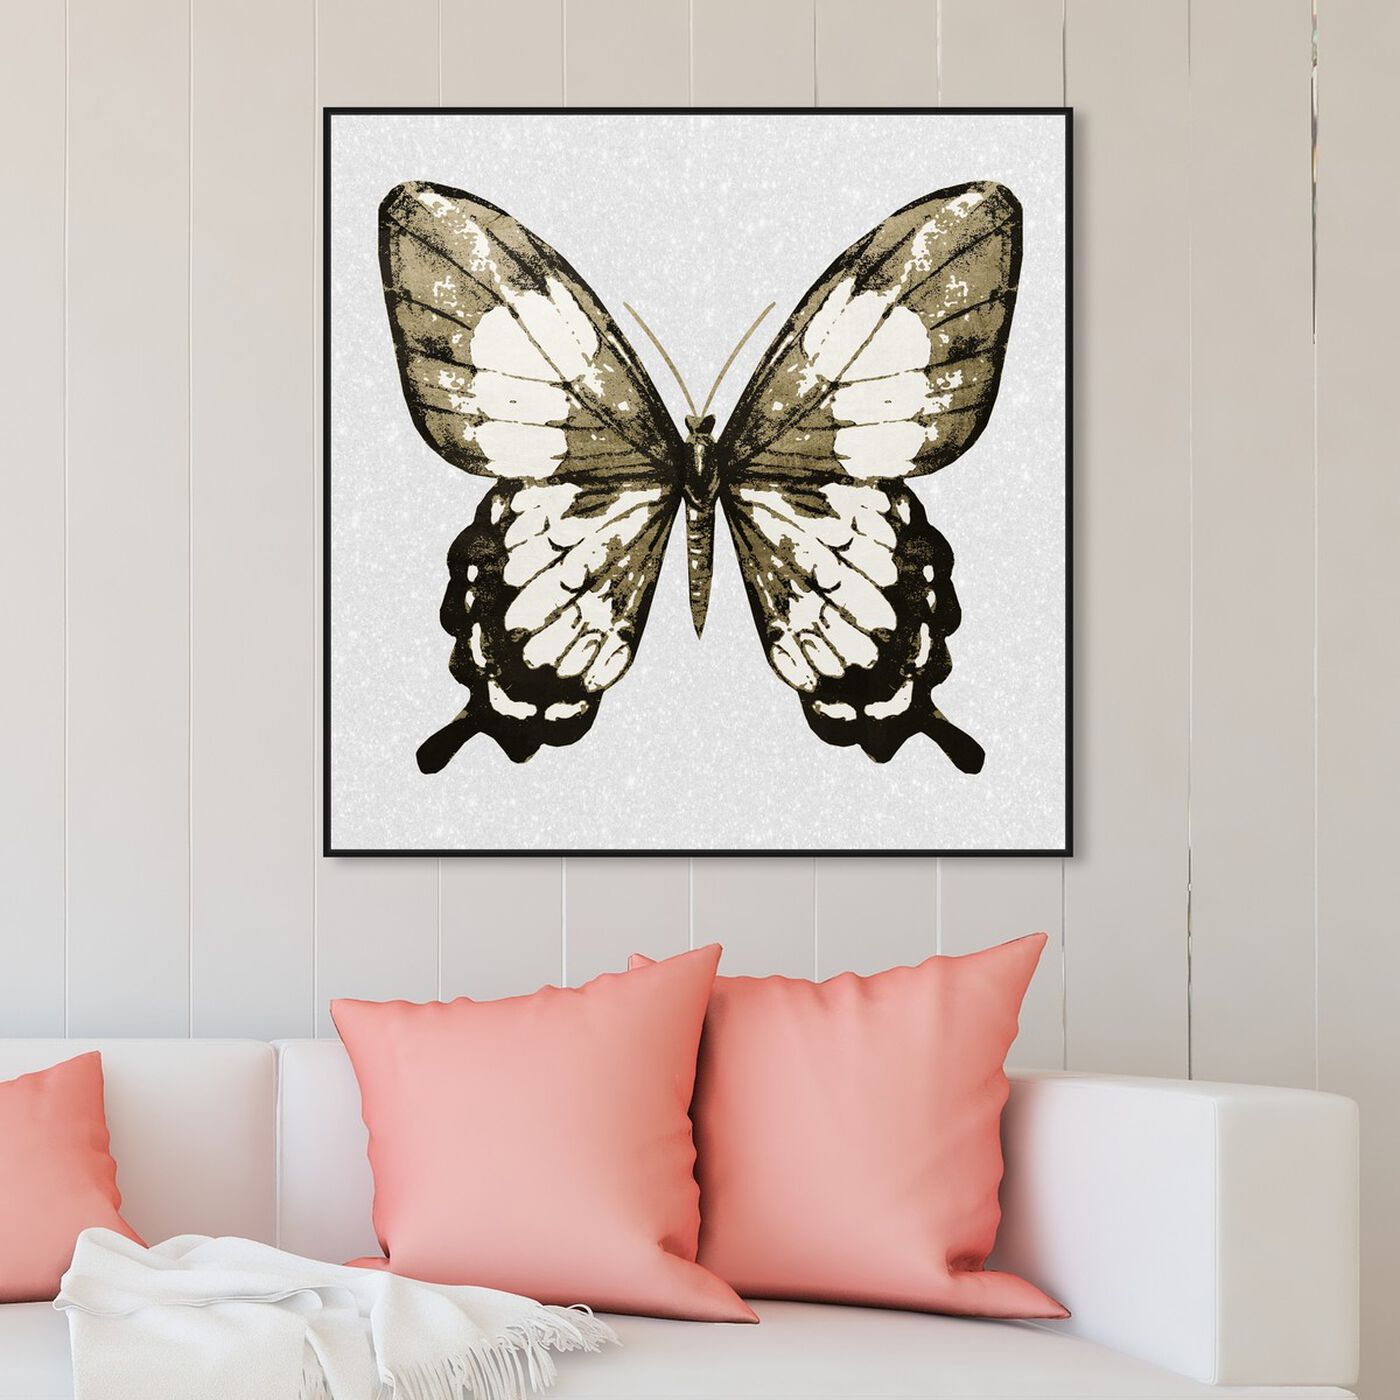 Hanging view of Butterfly Gold and Black featuring animals and insects art.